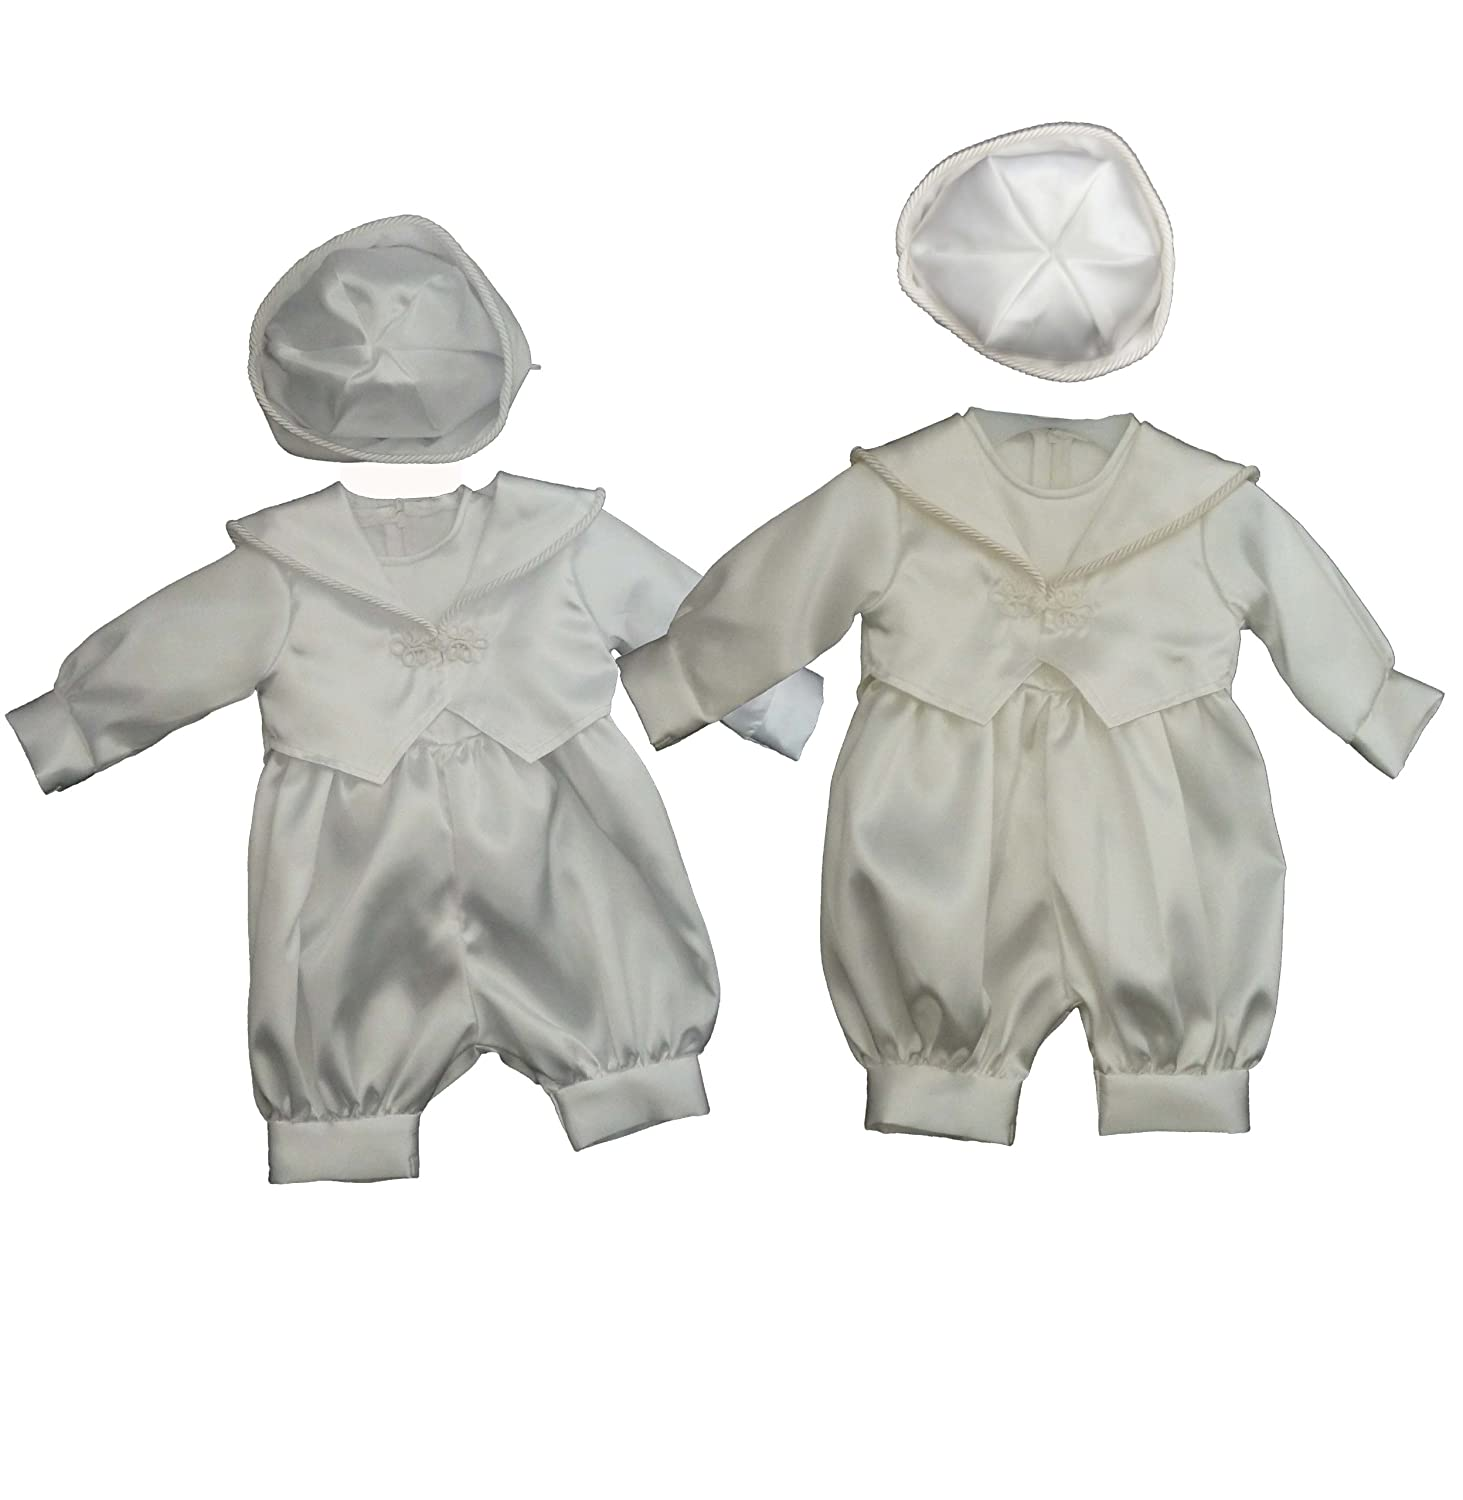 Baby Boys 3 Piece Christening Wedding Romper Outfit in White & Ivory (6-9 Months, Ivory) Jaan Collection